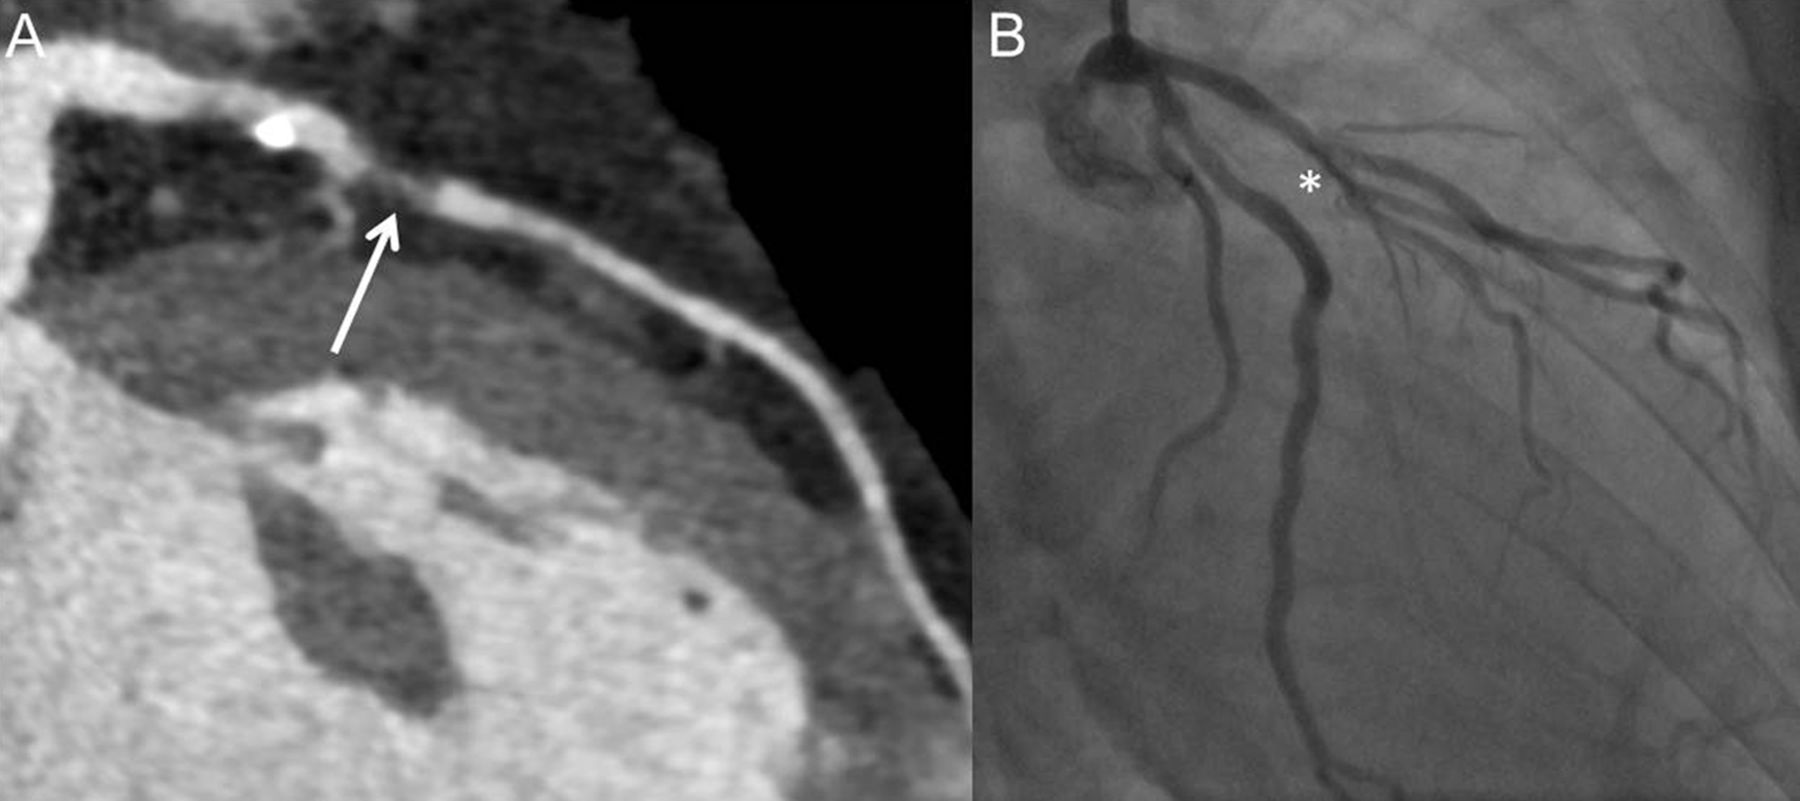 Coronary Ct Angiography For Patients With Suspected Coronary Artery